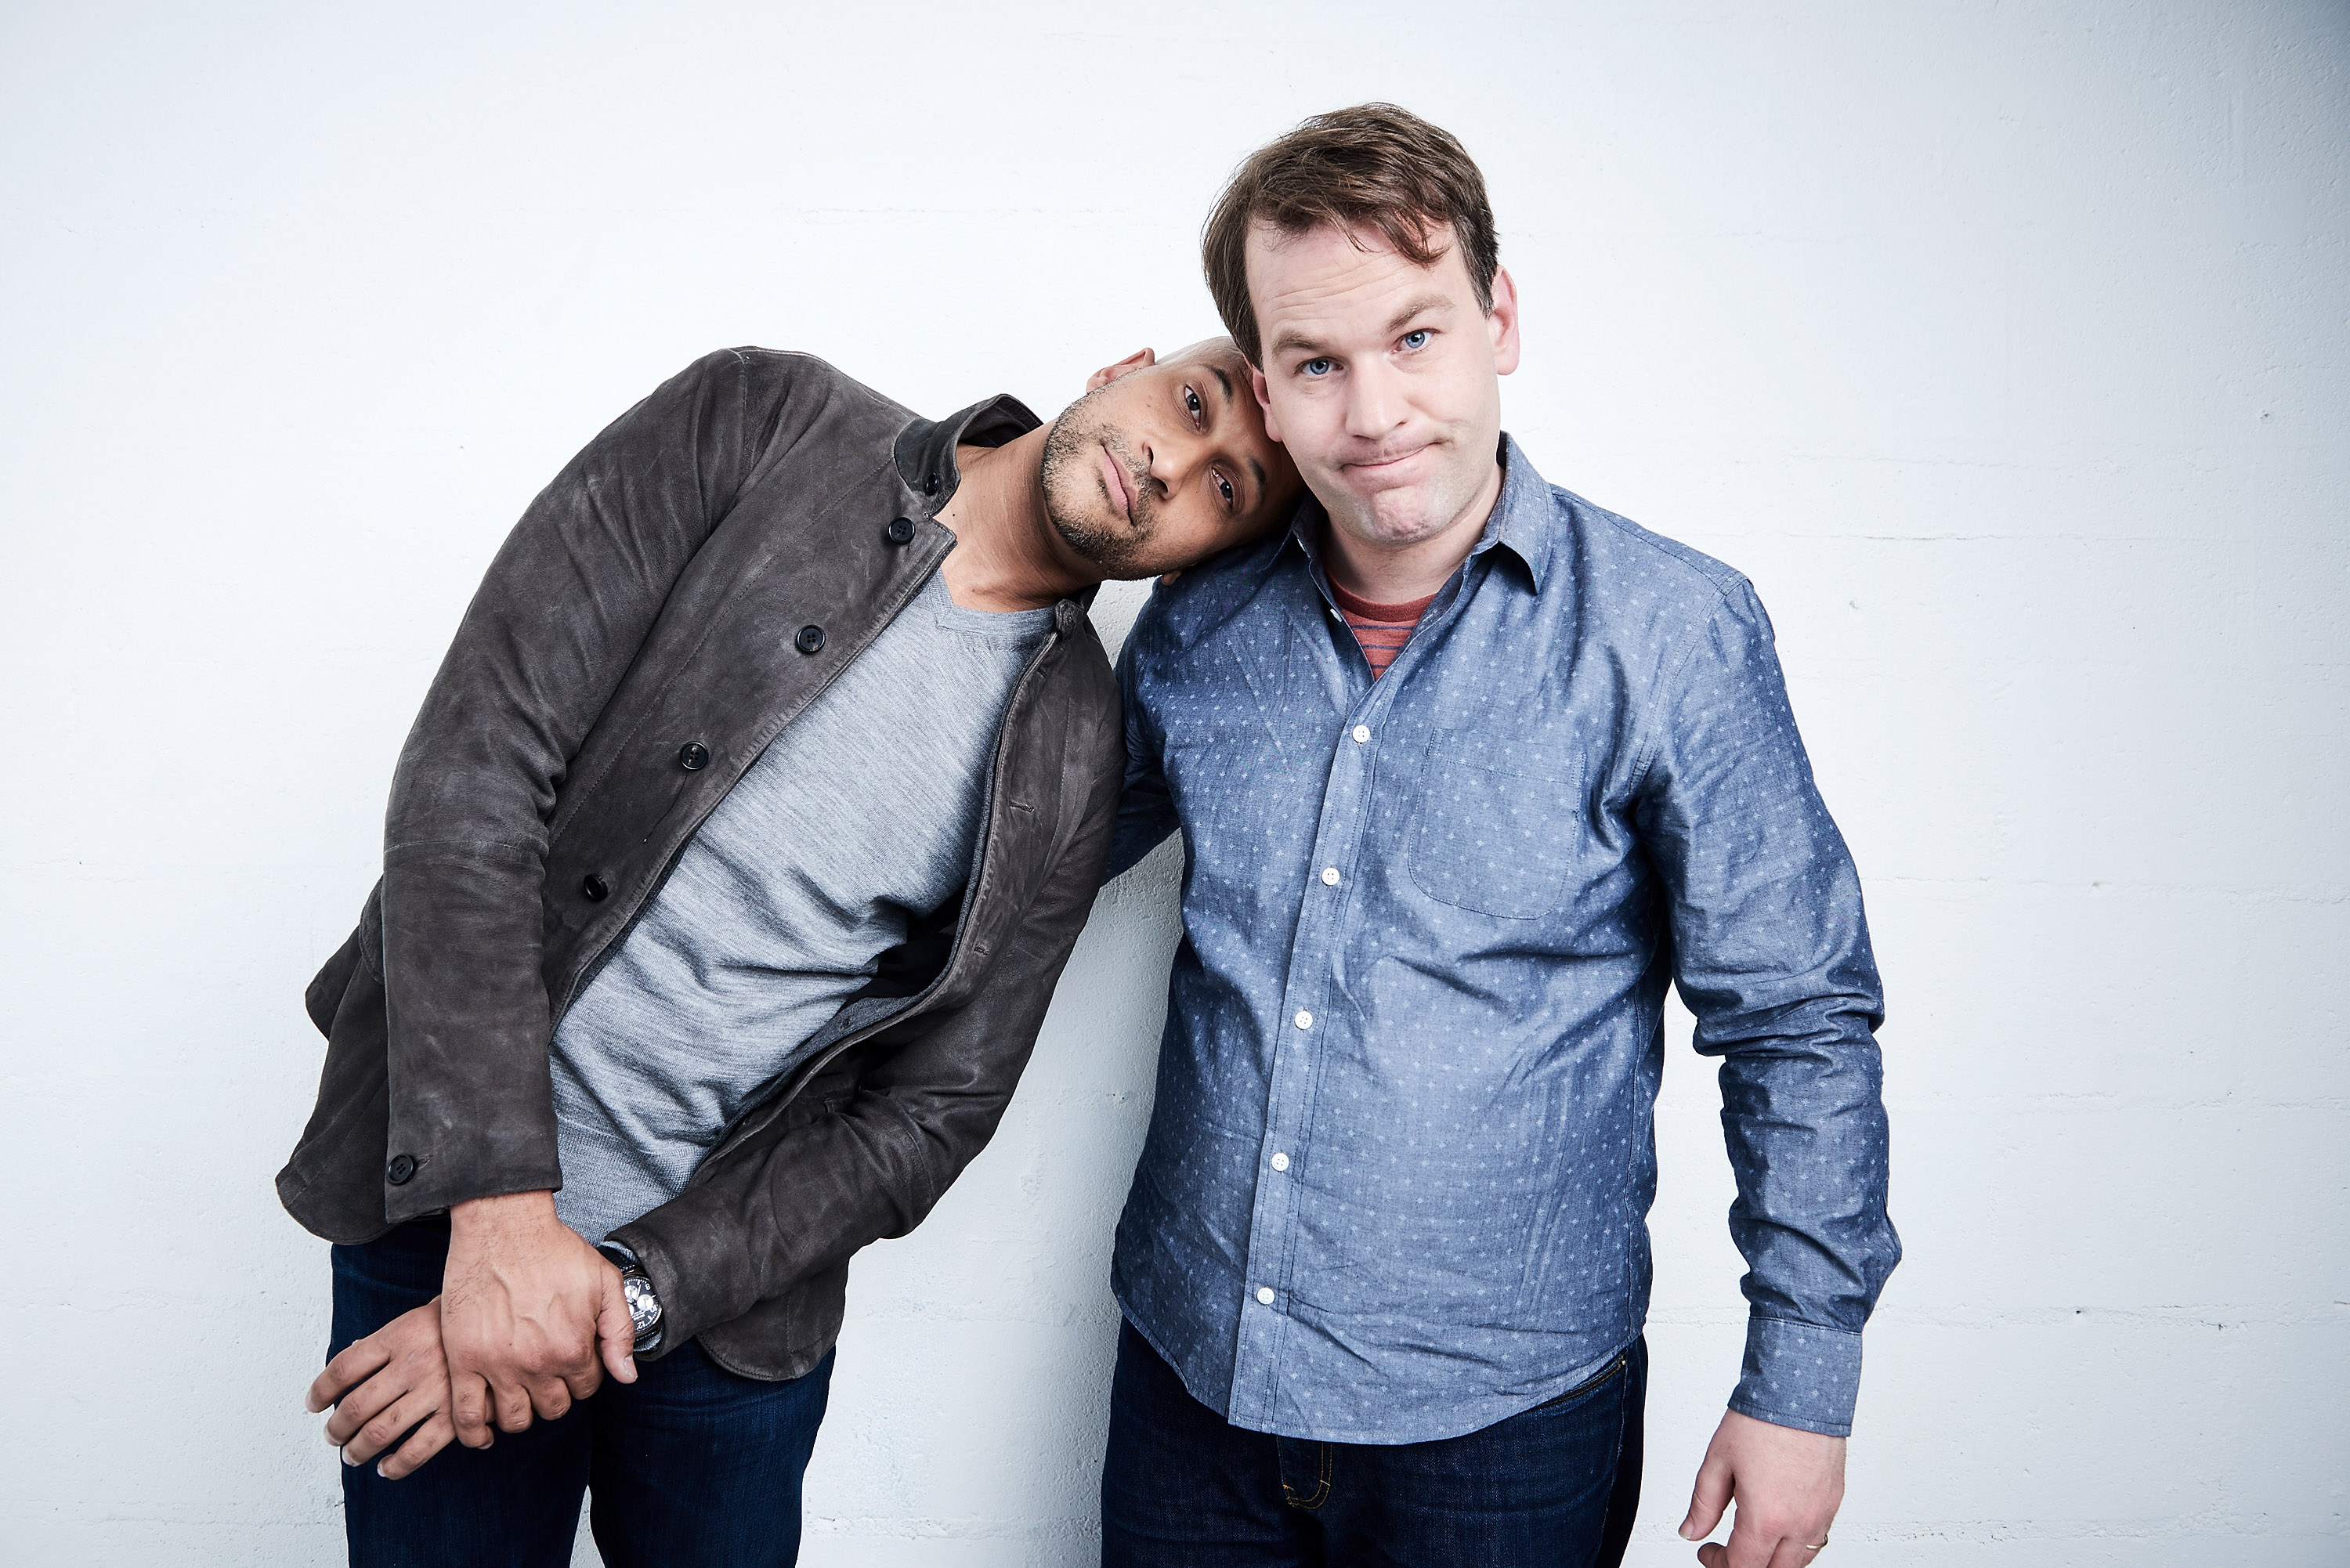 Keegan-Michael Key and Mike Birbiglia from  Don't Think Twice  pose at the Tribeca Film Festival Getty Images Studio on April 18, 2016 in New York City.